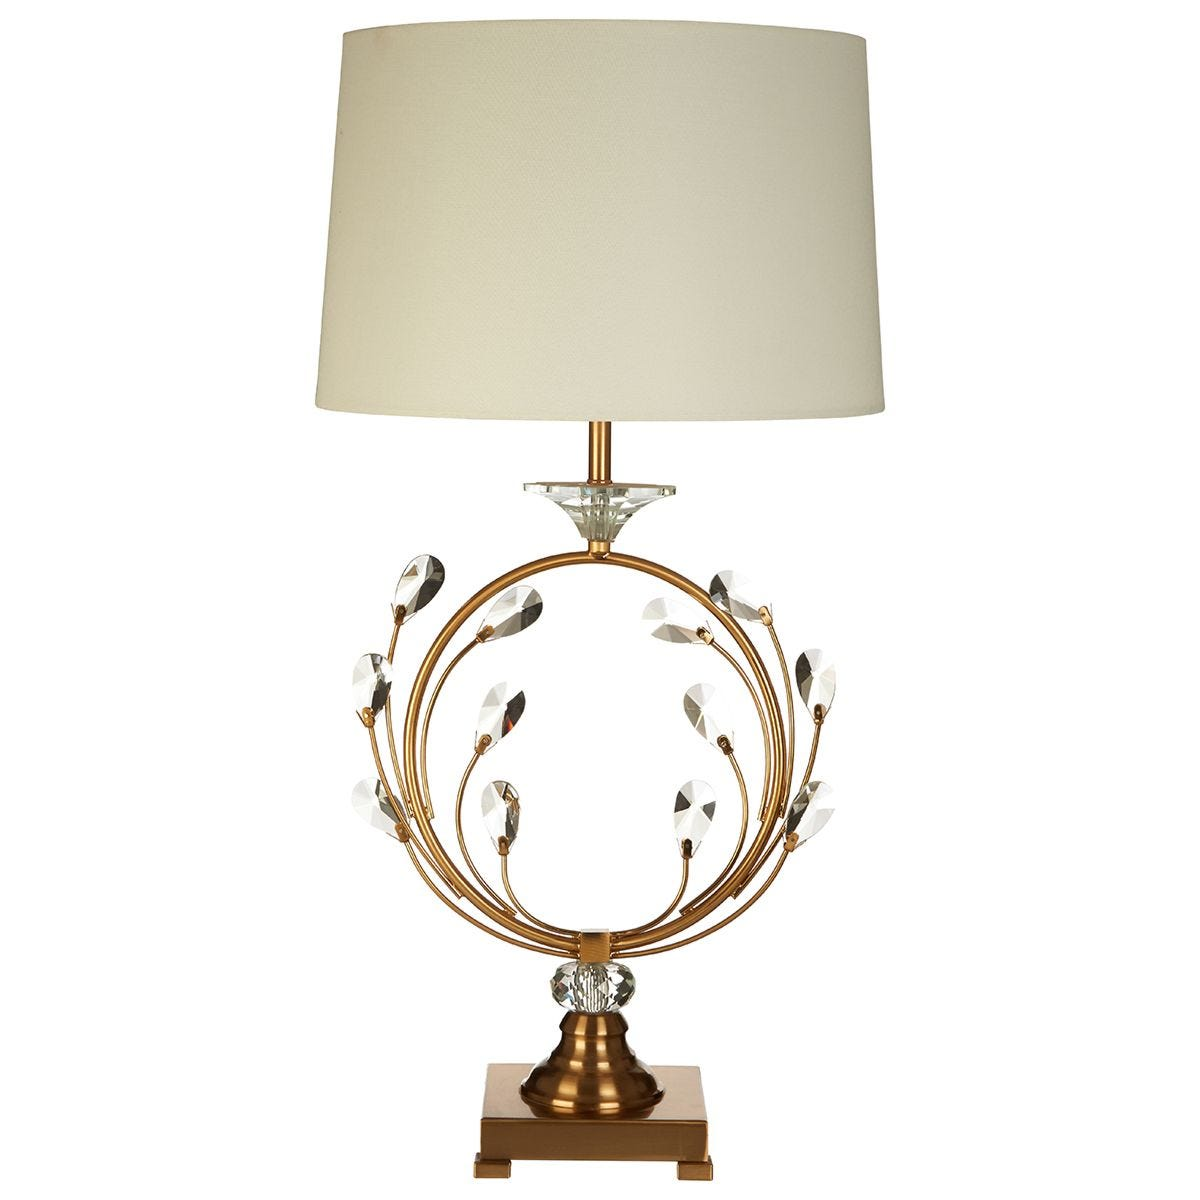 Premier Housewares Zahra Table Lamp in Crystal/Gold Finish with White Linen Shade